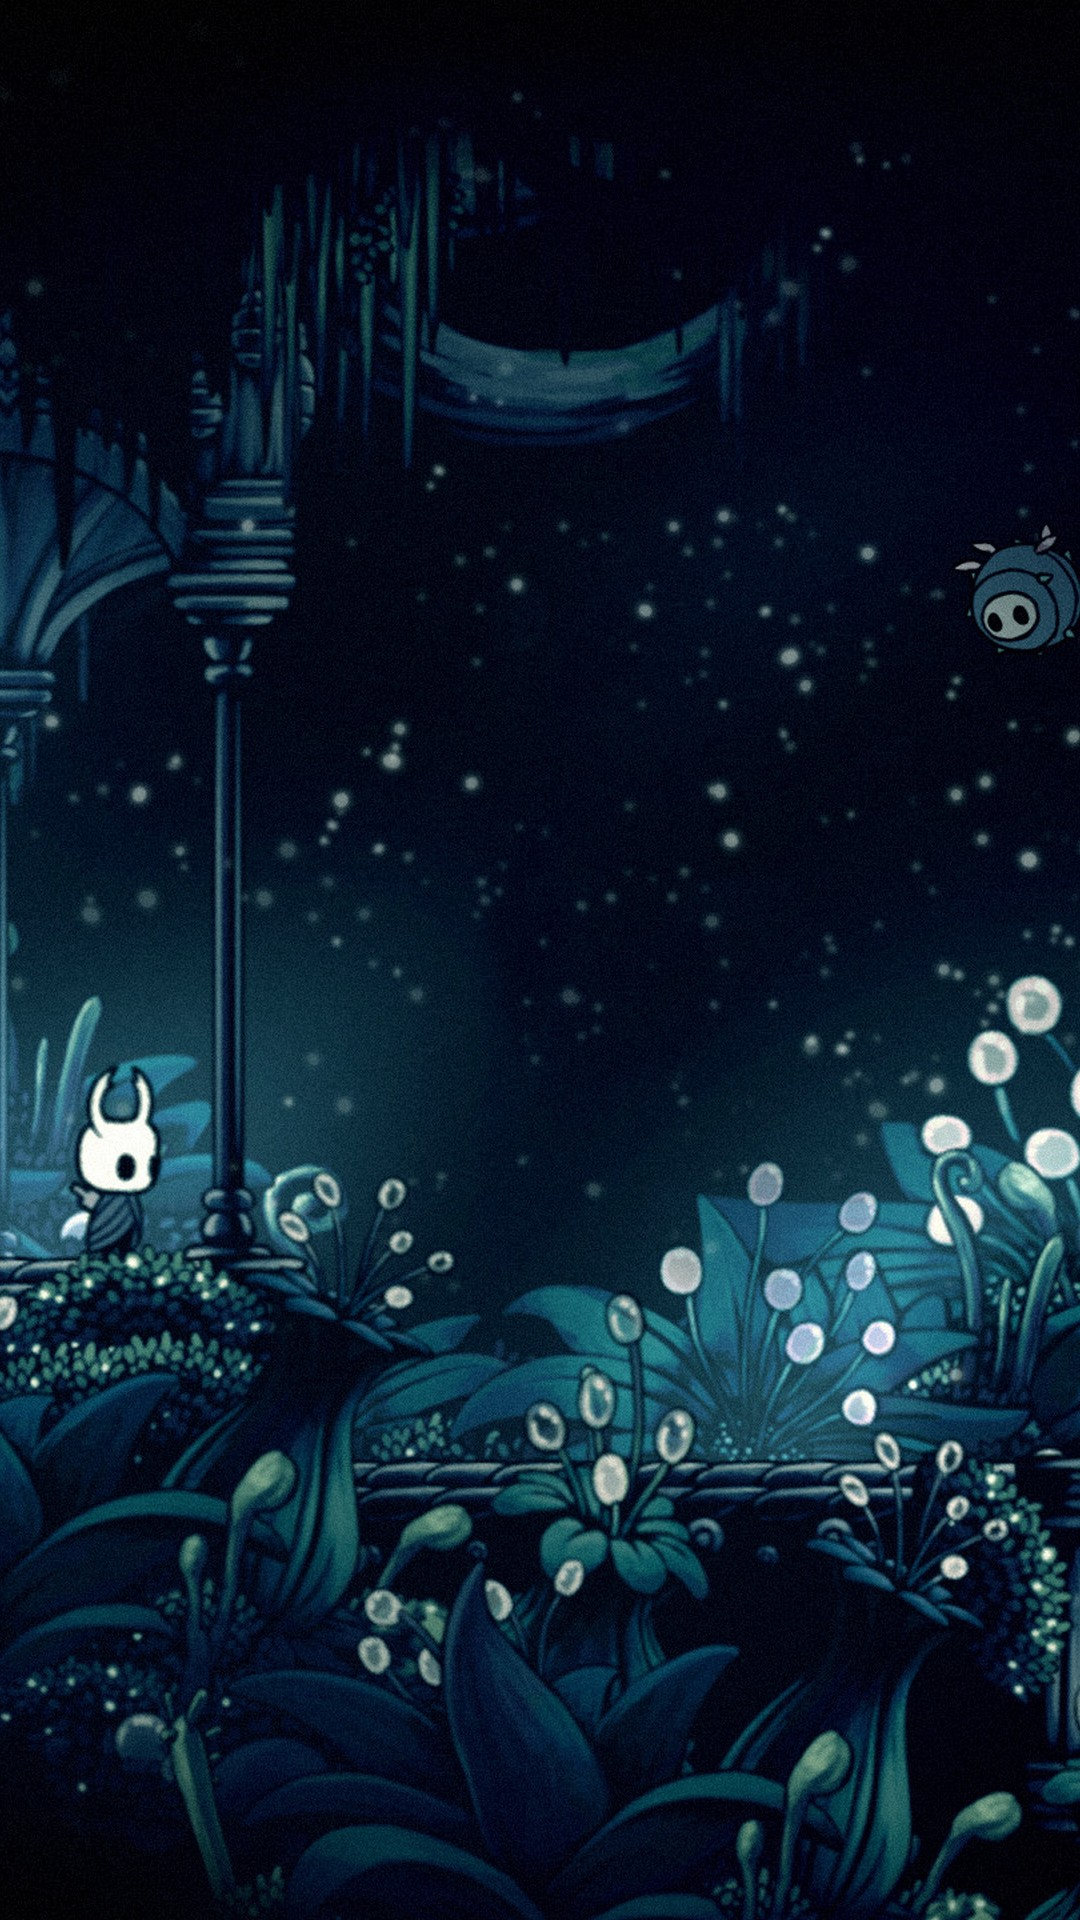 Hollow Knight i Phones Wallpaper 2020 Phone Wallpaper HD 1080x1920